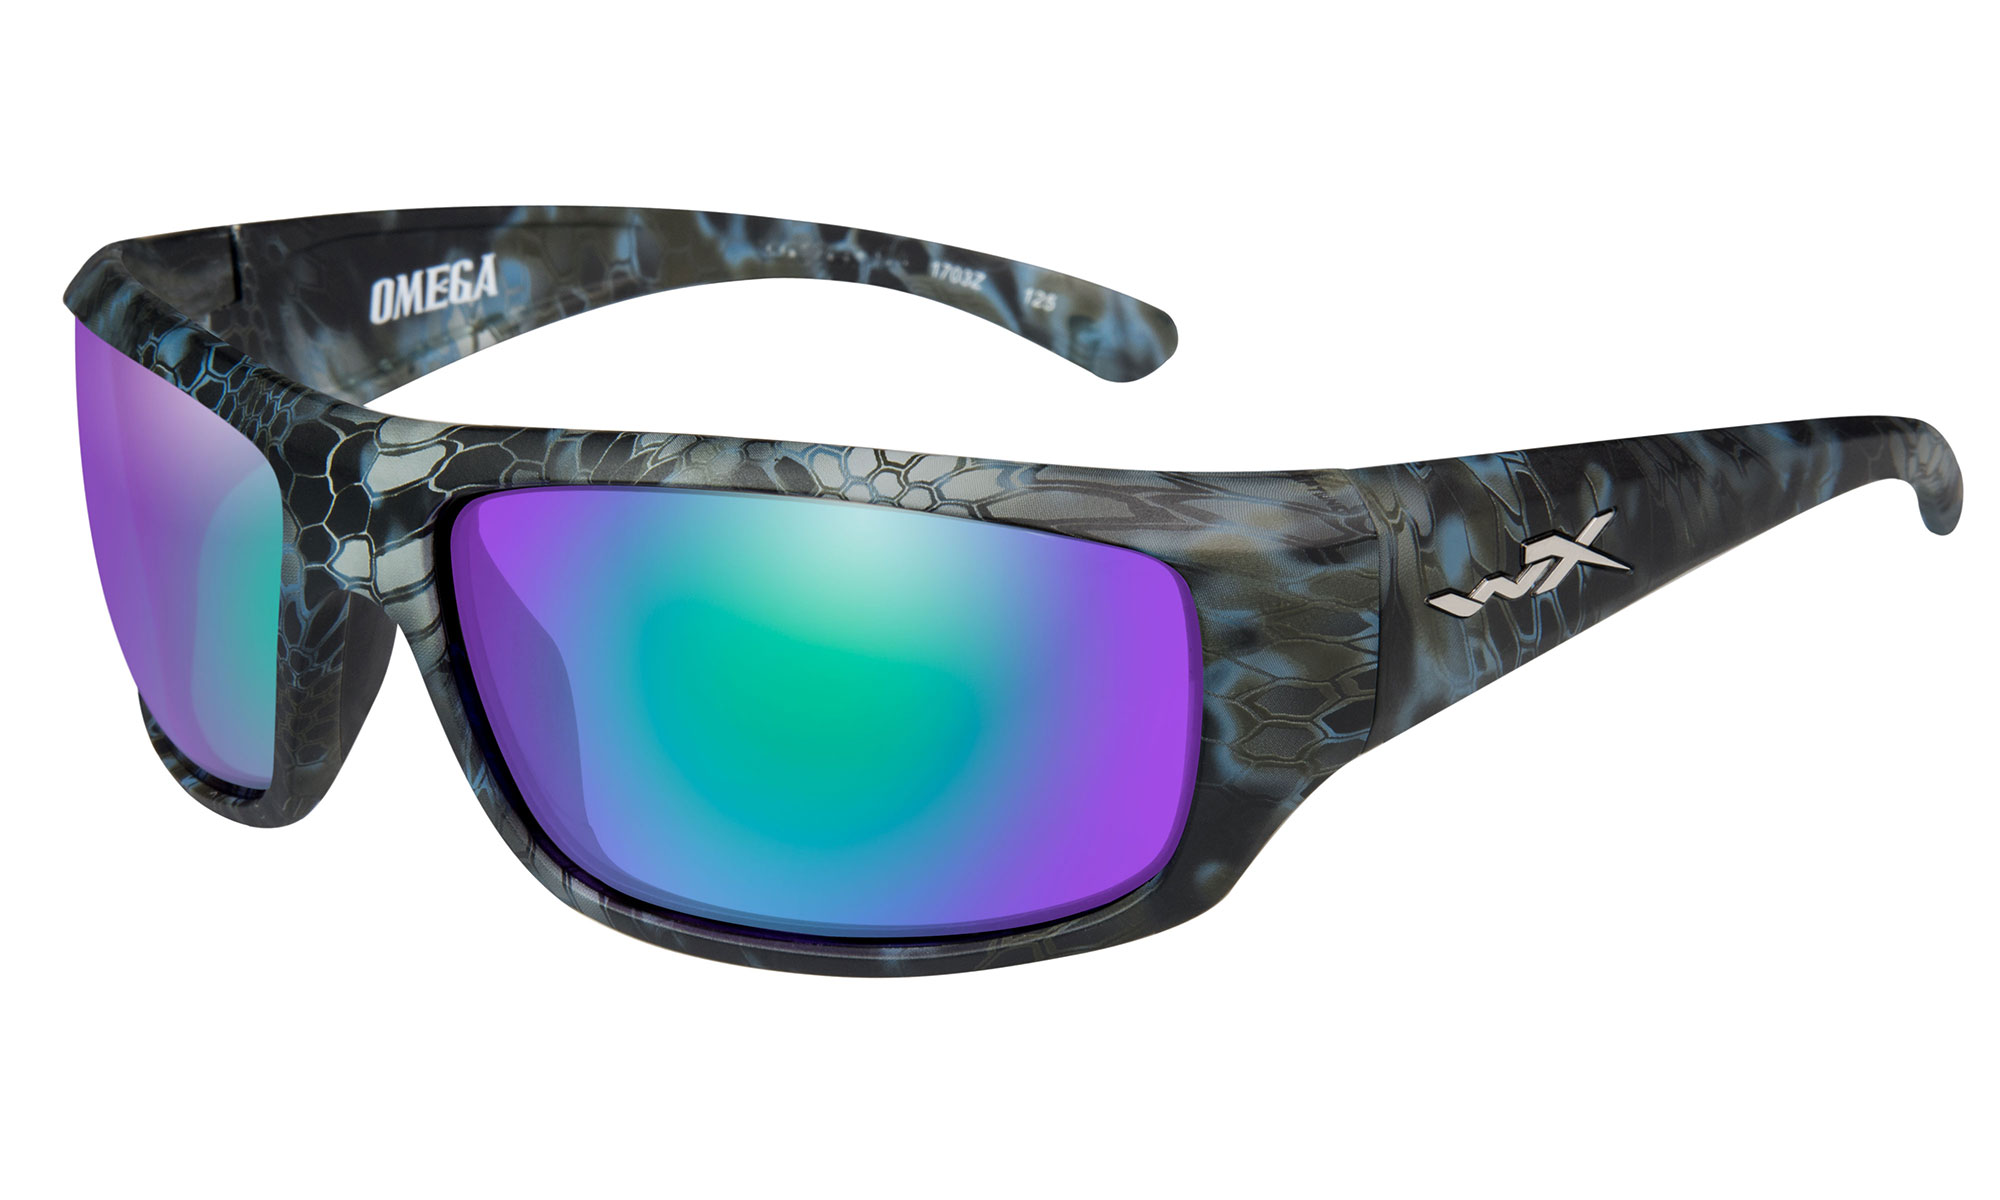 23ed43bdb8c2 Wiley X Sunglasses and Safety Glasses - USA Online Store